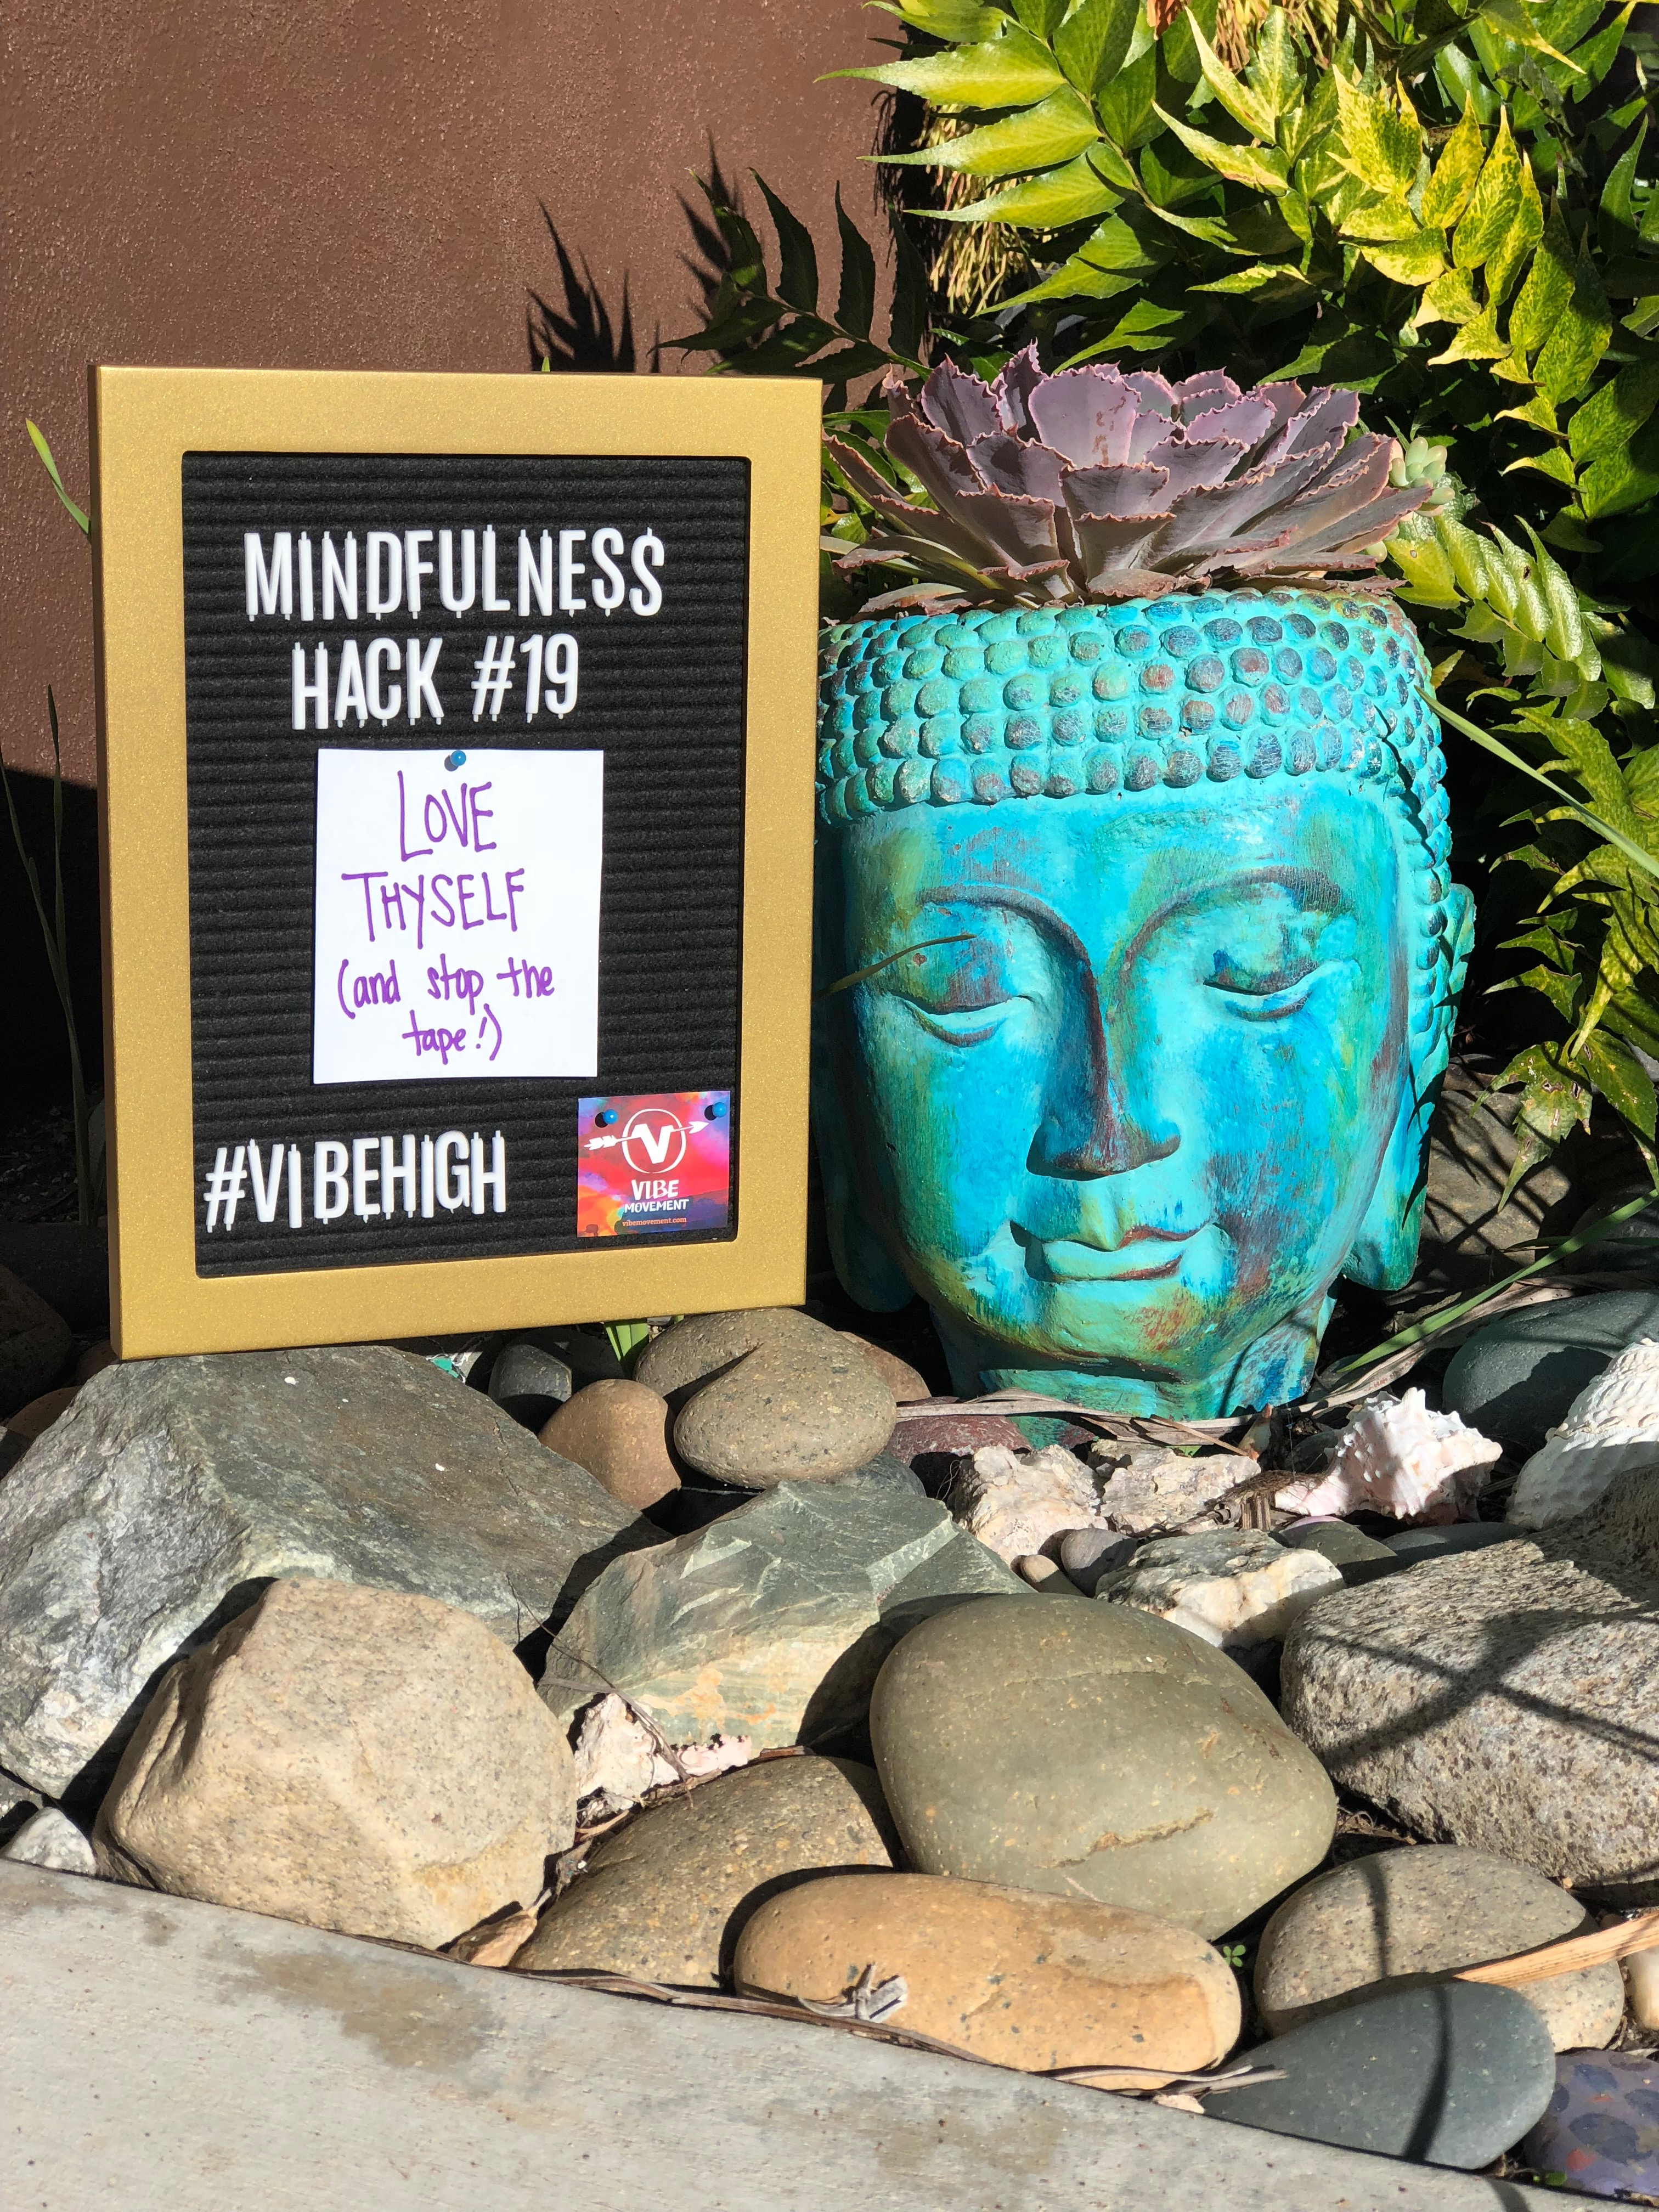 Mindfulness Hack #19: Love Thyself (and Stop the Tape!)